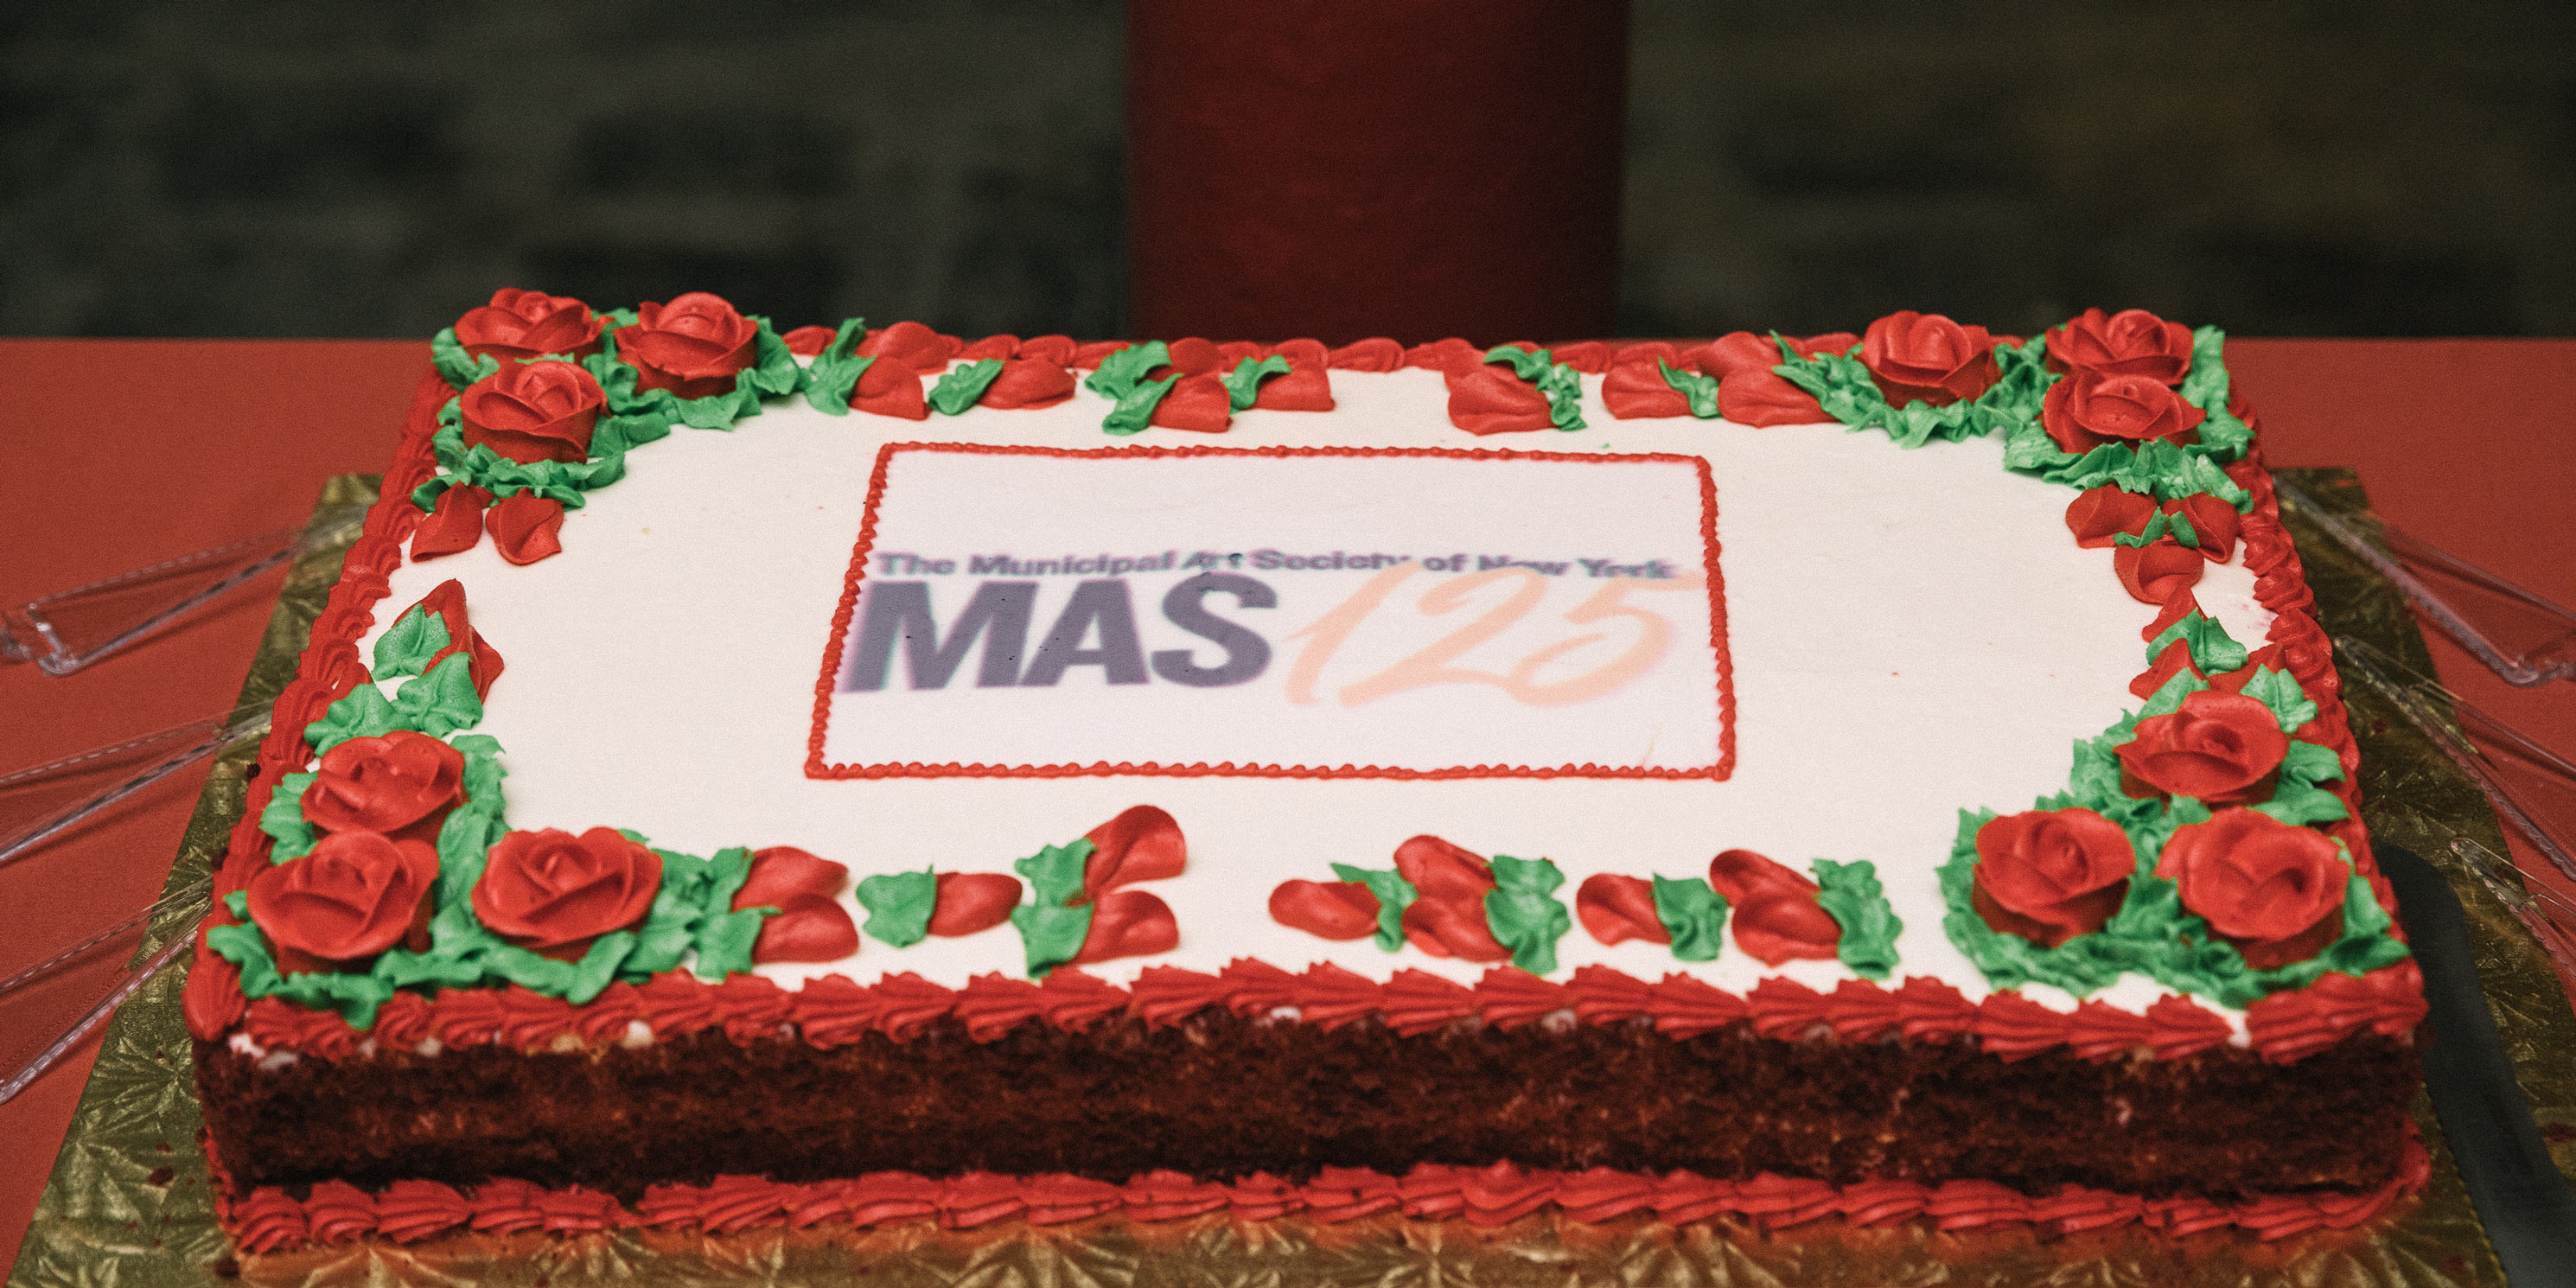 cake for 125th anniversary at the Celebrating the City reception